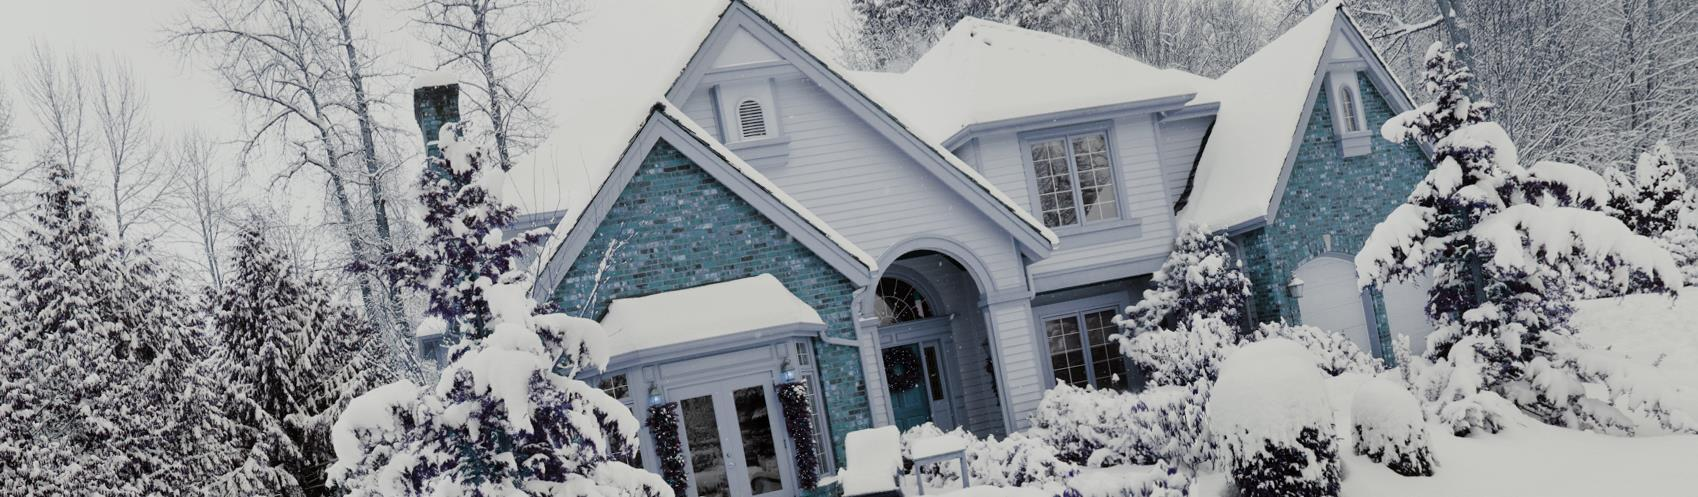 Ahouse-in-snow-medium.jpg